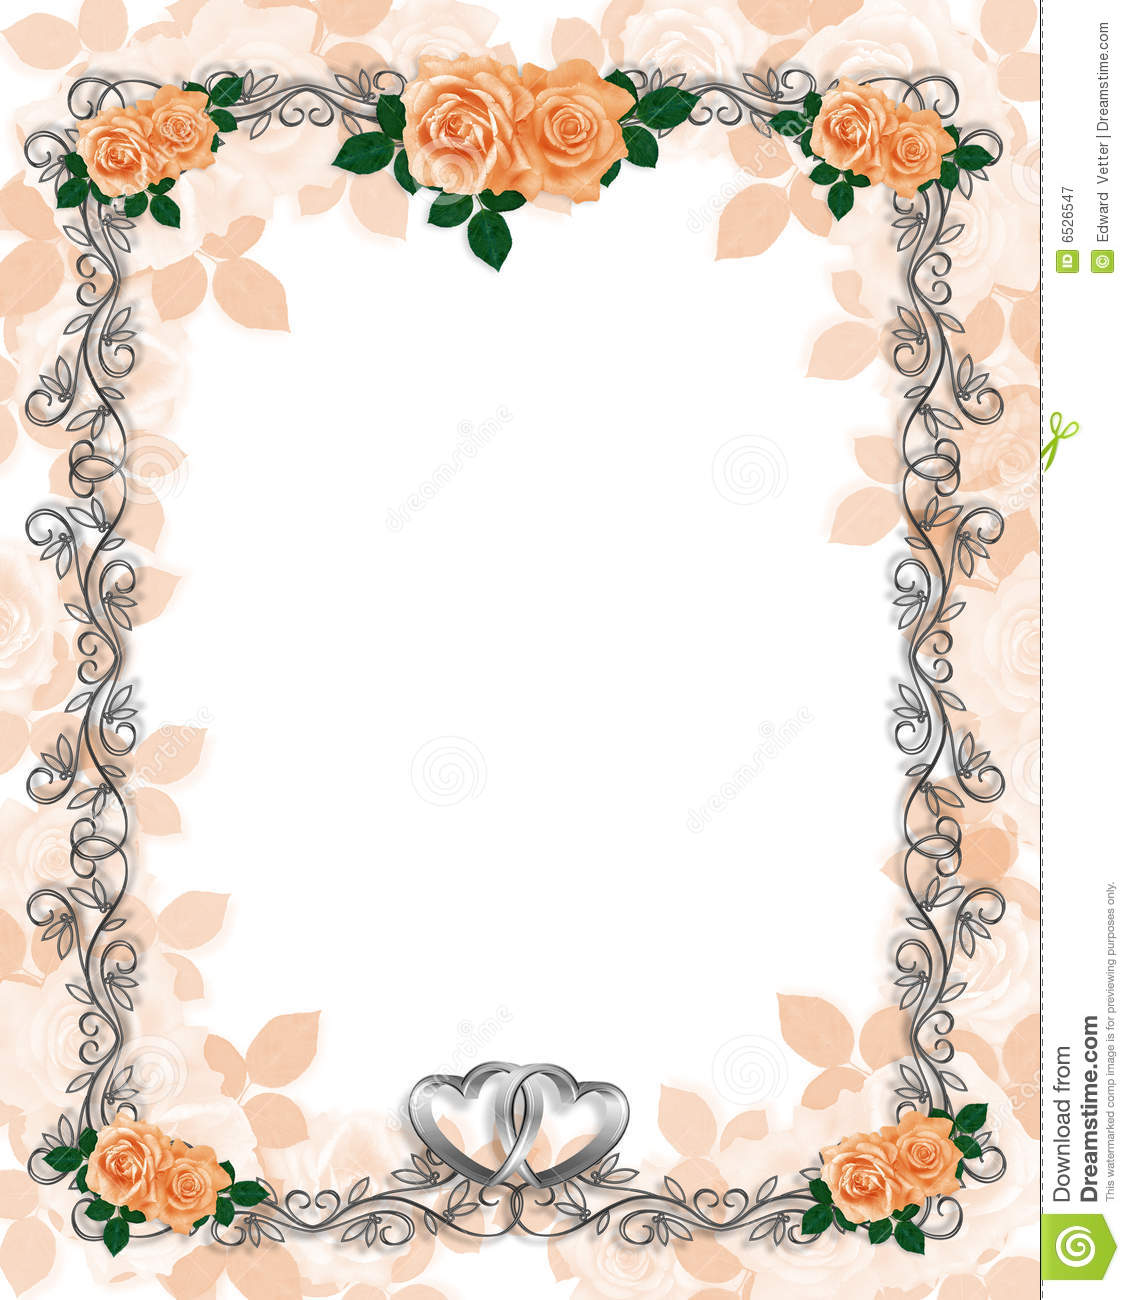 Roses Template Wedding Invitation Peach Stock Illustration